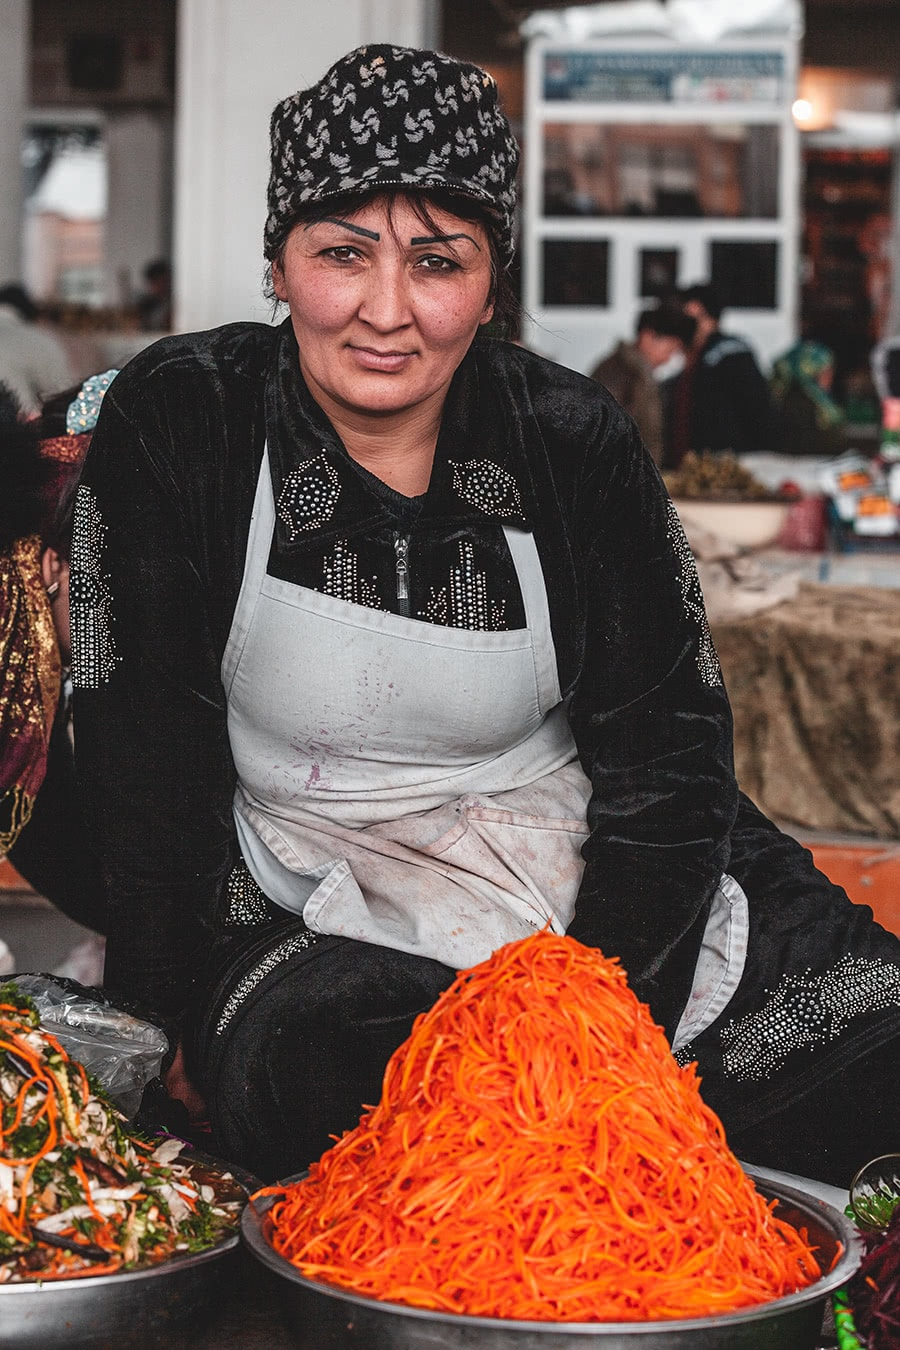 Vendor at the Tashkent market.